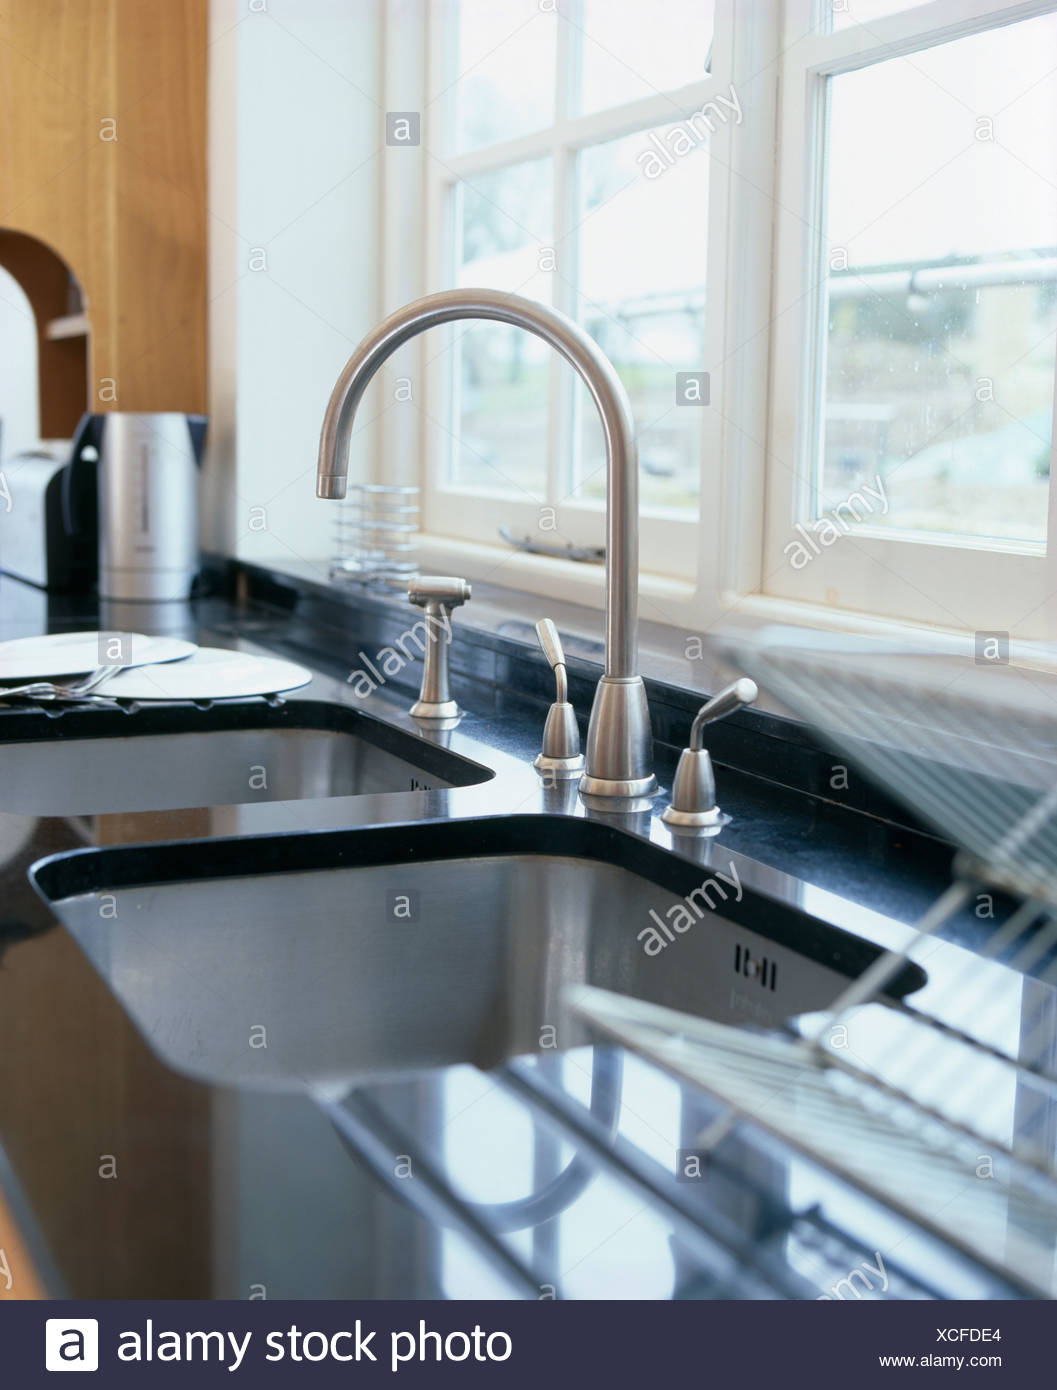 Close-up of stainless steel tap and under-set sink in black granite ...